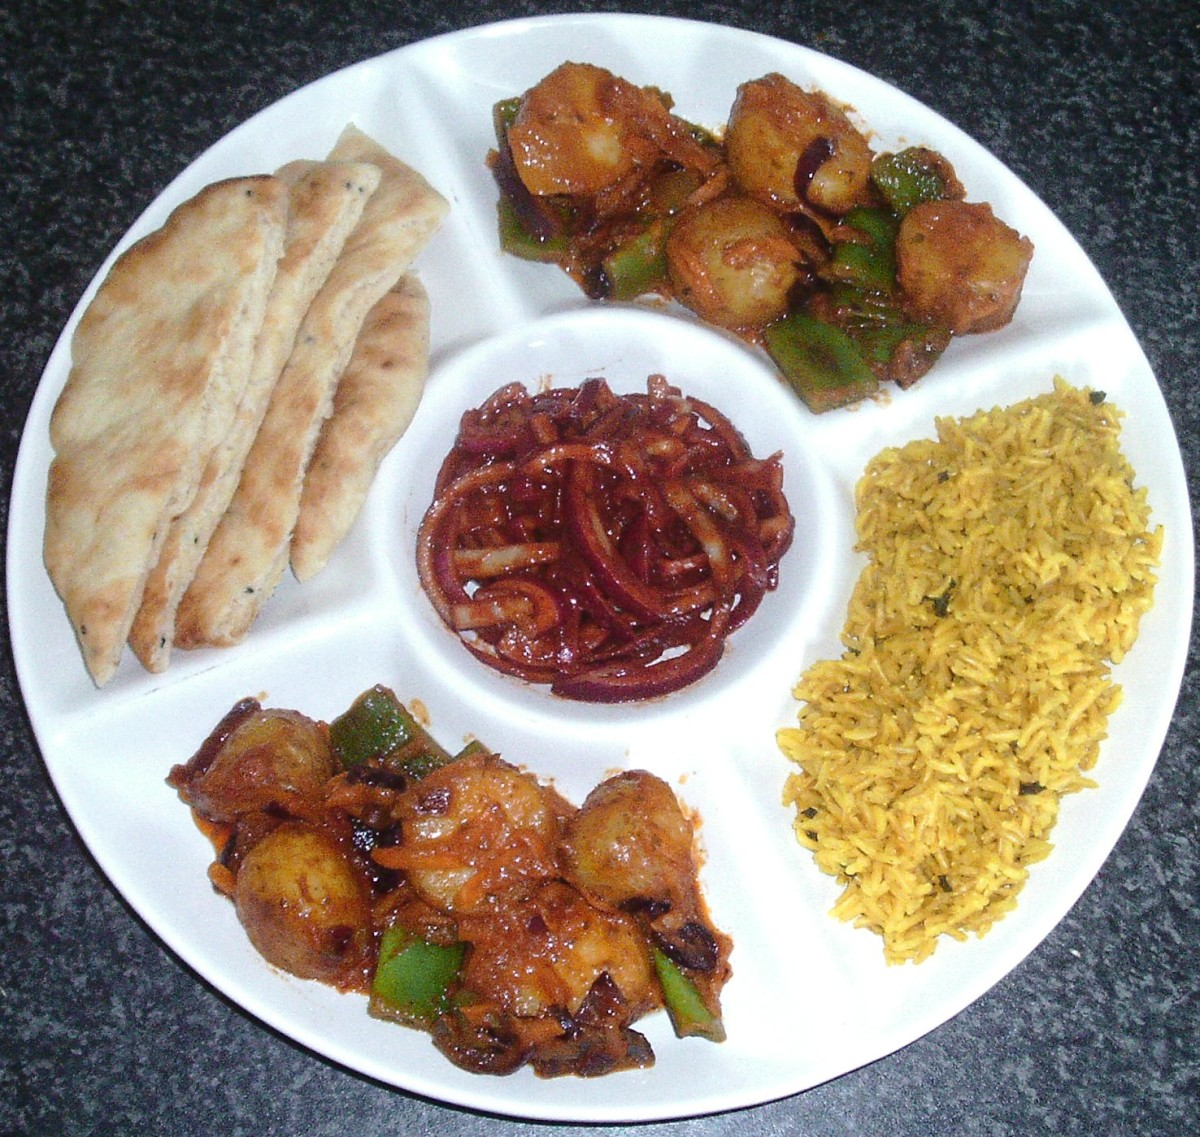 Potato and green bean jalfrezi with turmeric brown rice, spiced onions and naan bread